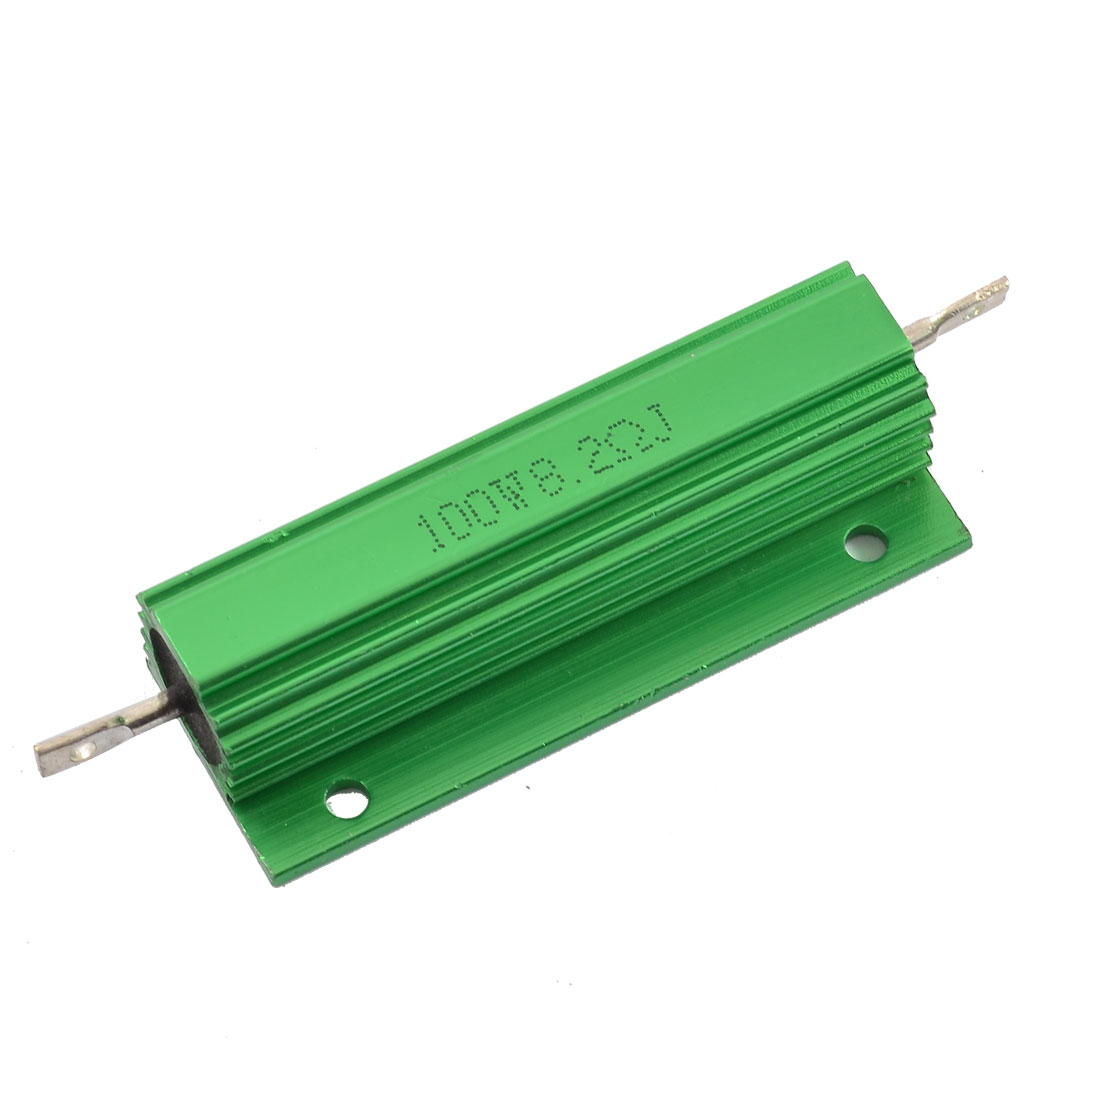 Aluminum Housing 100W Watt 8.2 Ohm Wirewound Power Resistor